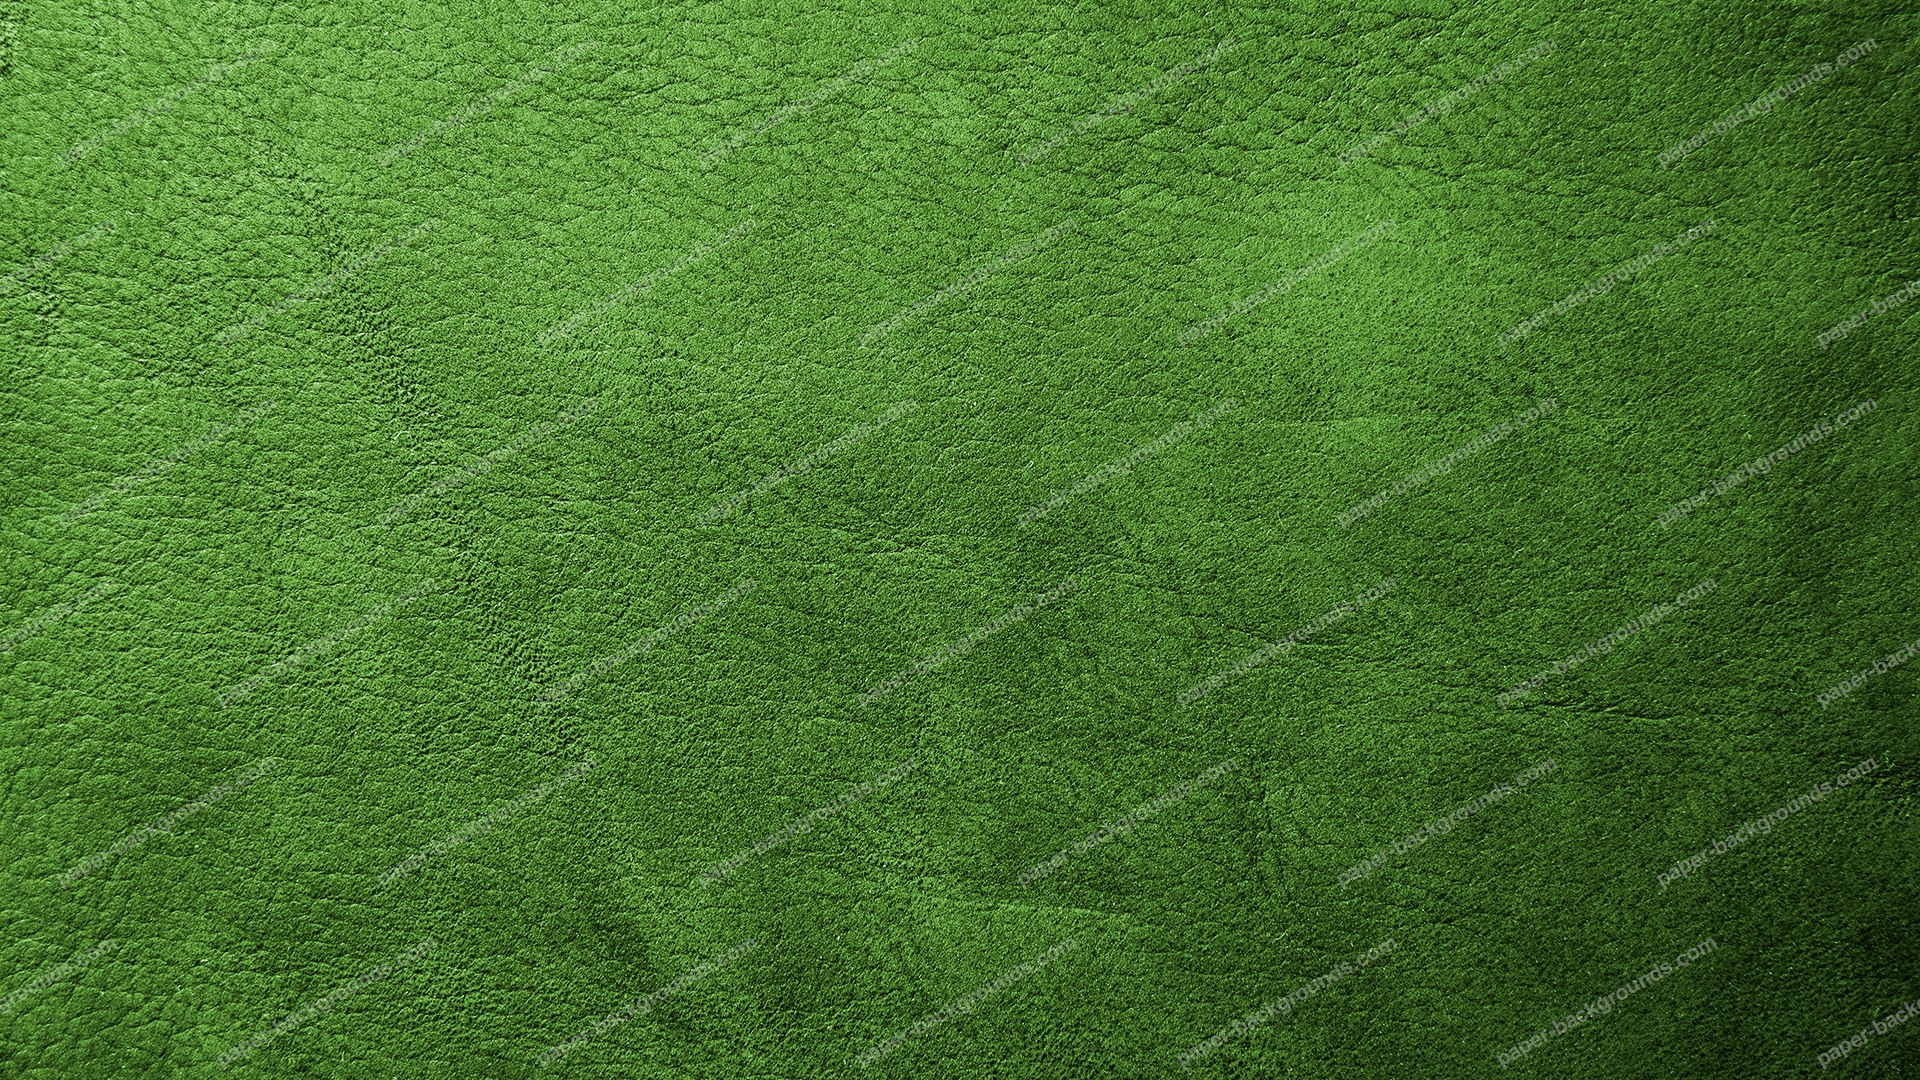 Green Leather Texture Background HD 1920 x 1080p